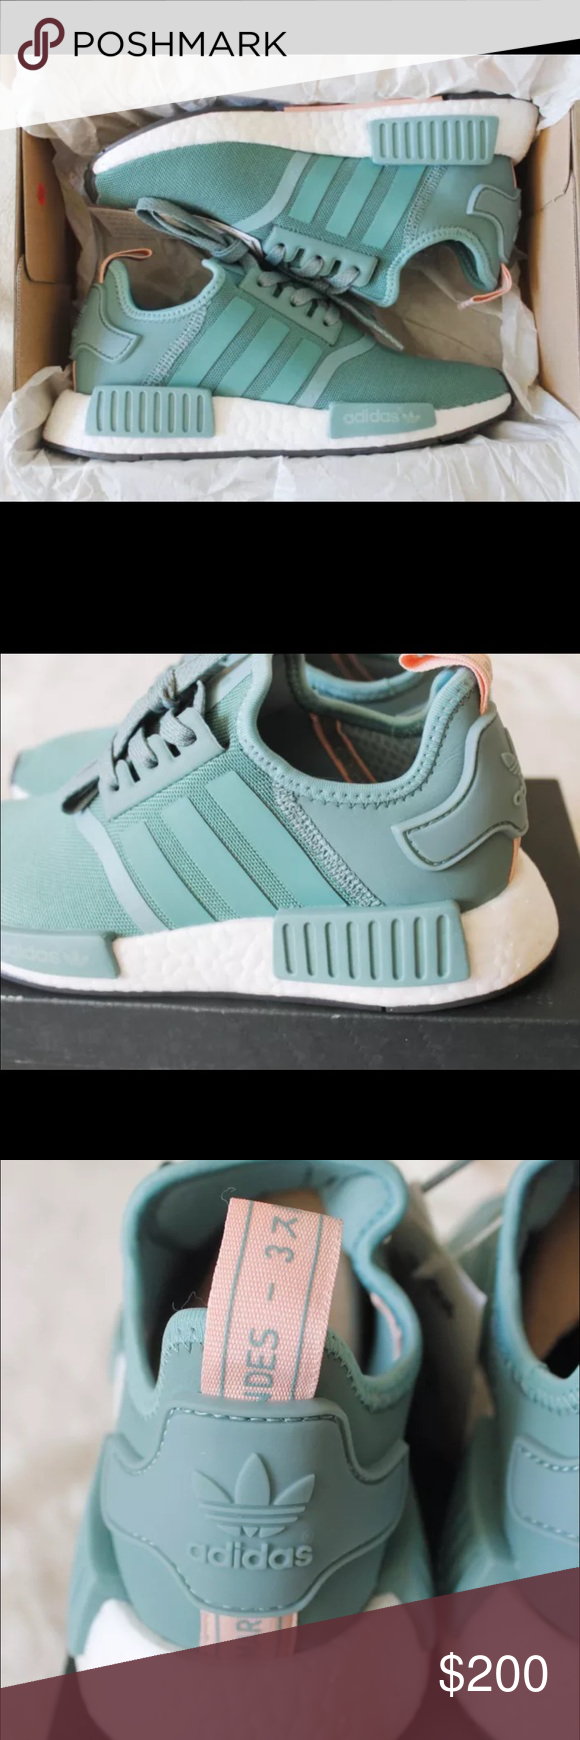 0ea3e8973000 Adidas NMD WOMEN VAPOUR STEEL New with box. Adidas Shoes Athletic Shoes  Best Adidas Shoes